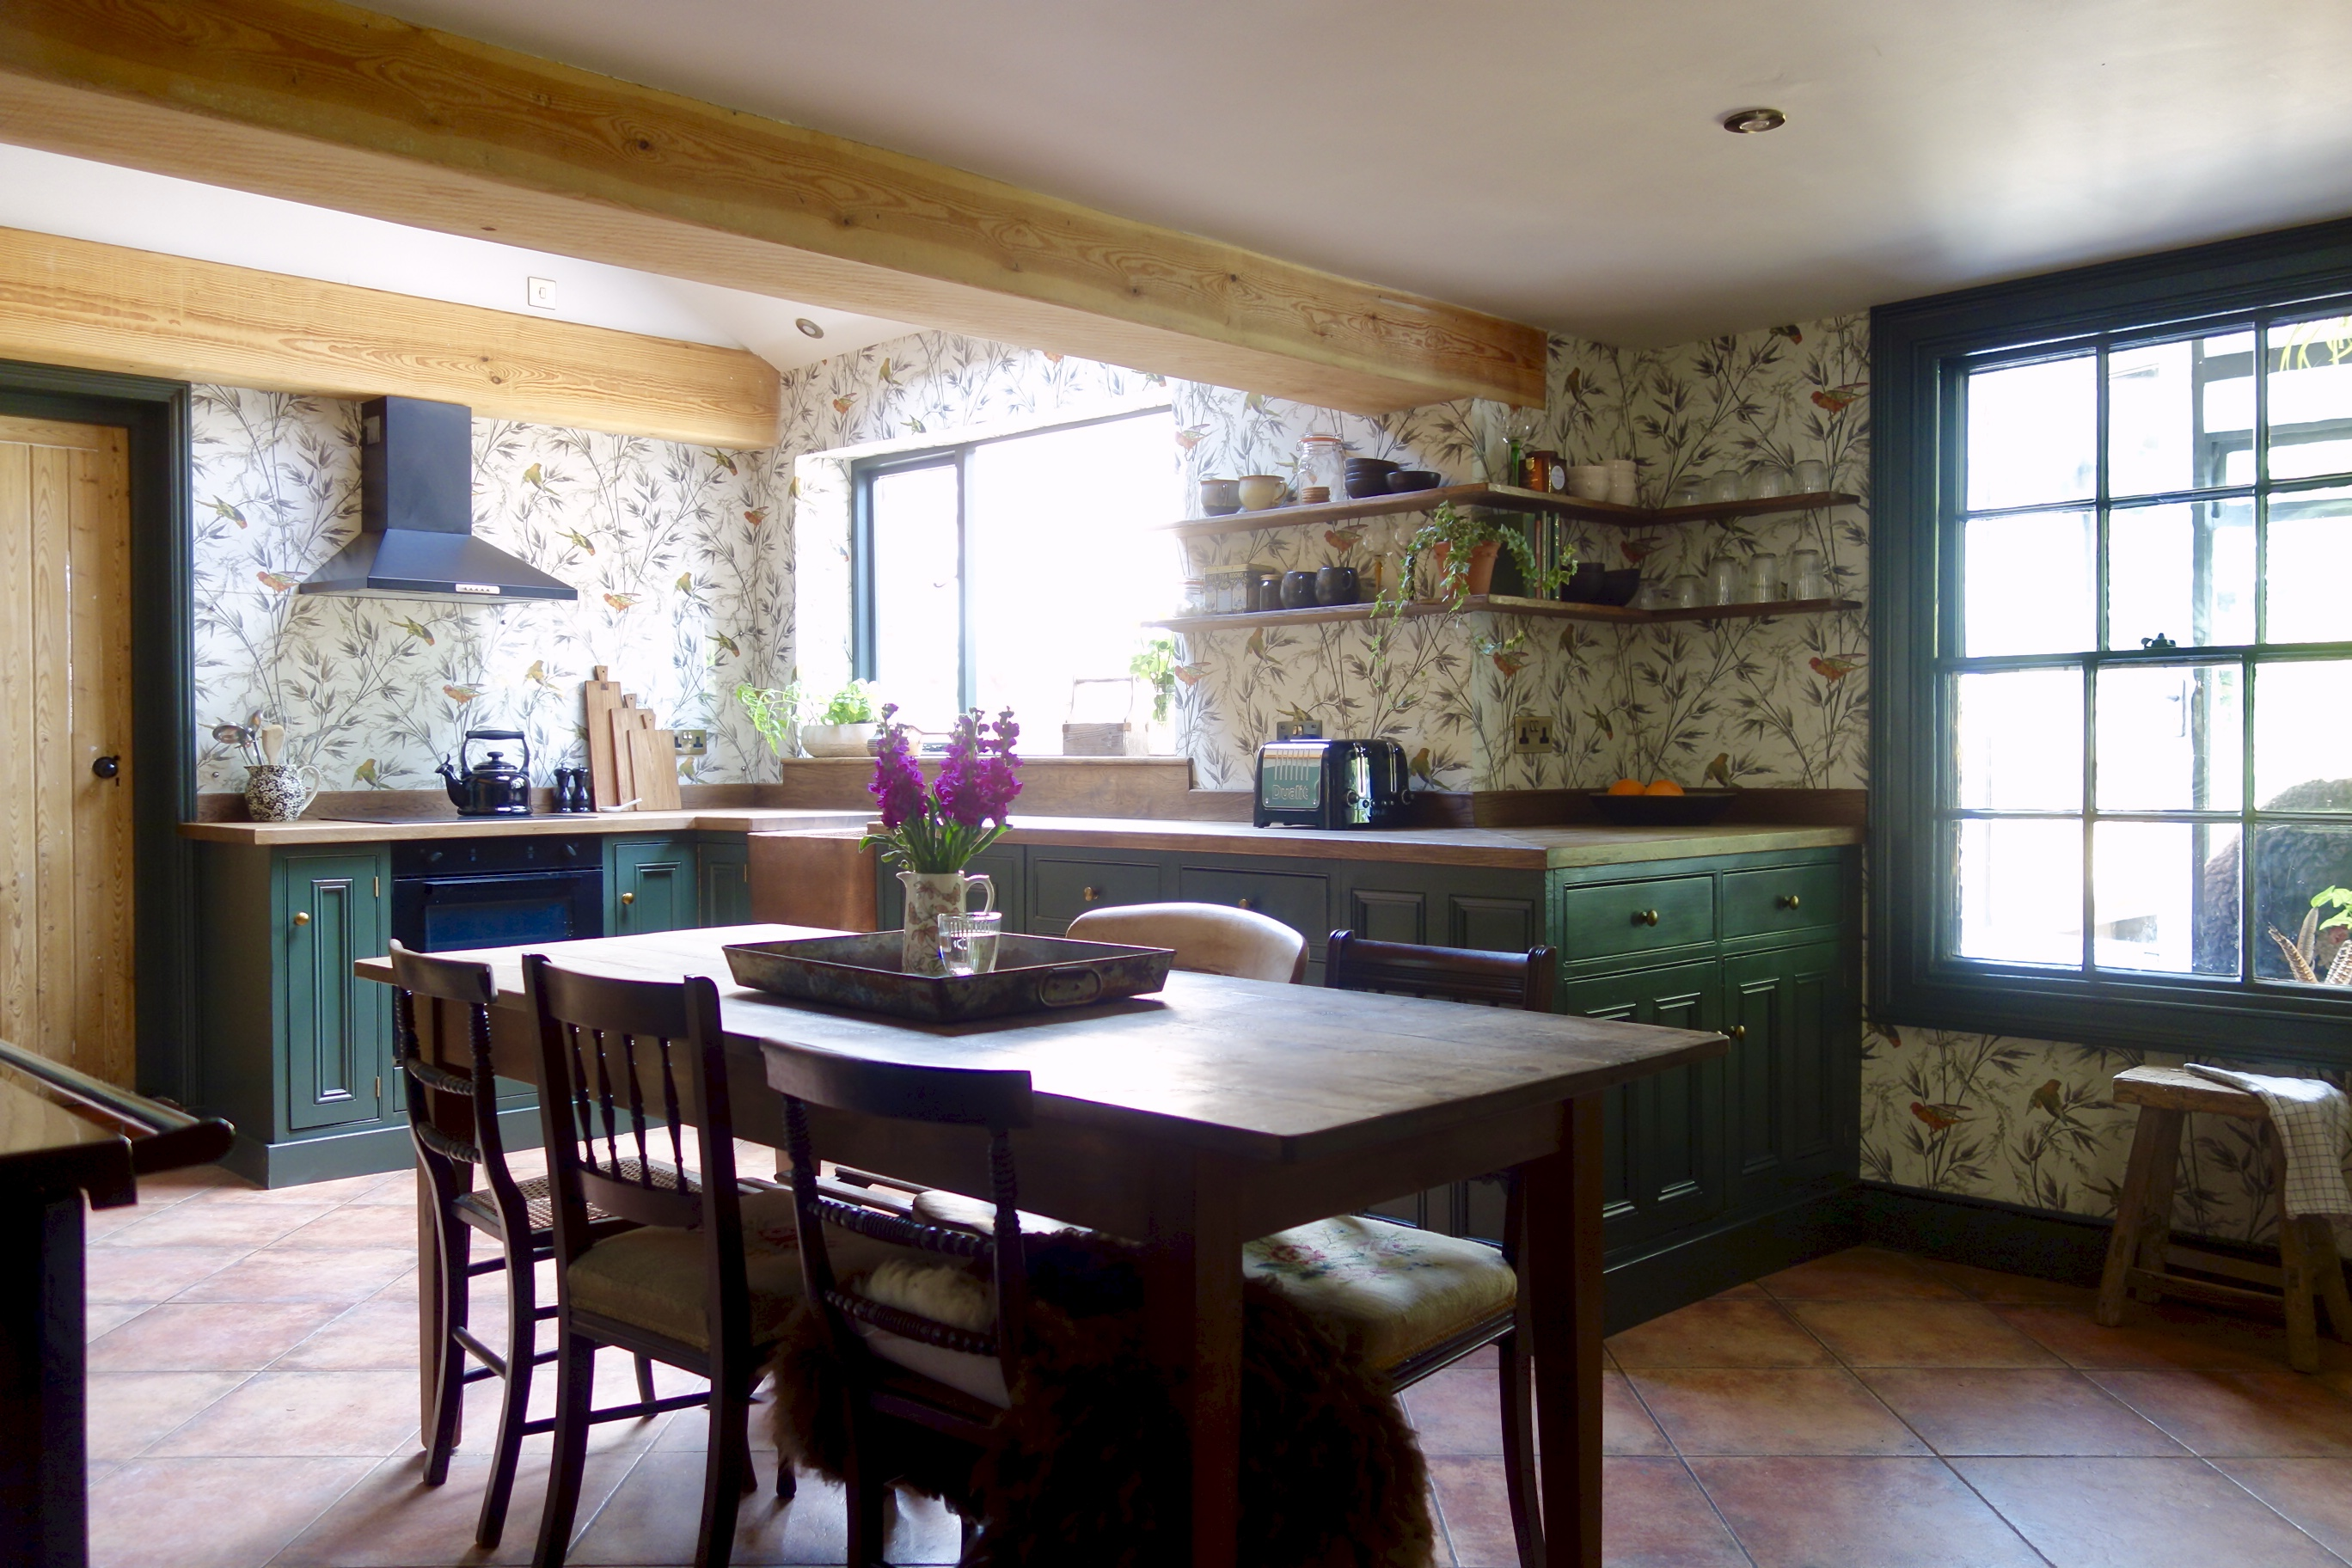 Open plan kitchen dining space